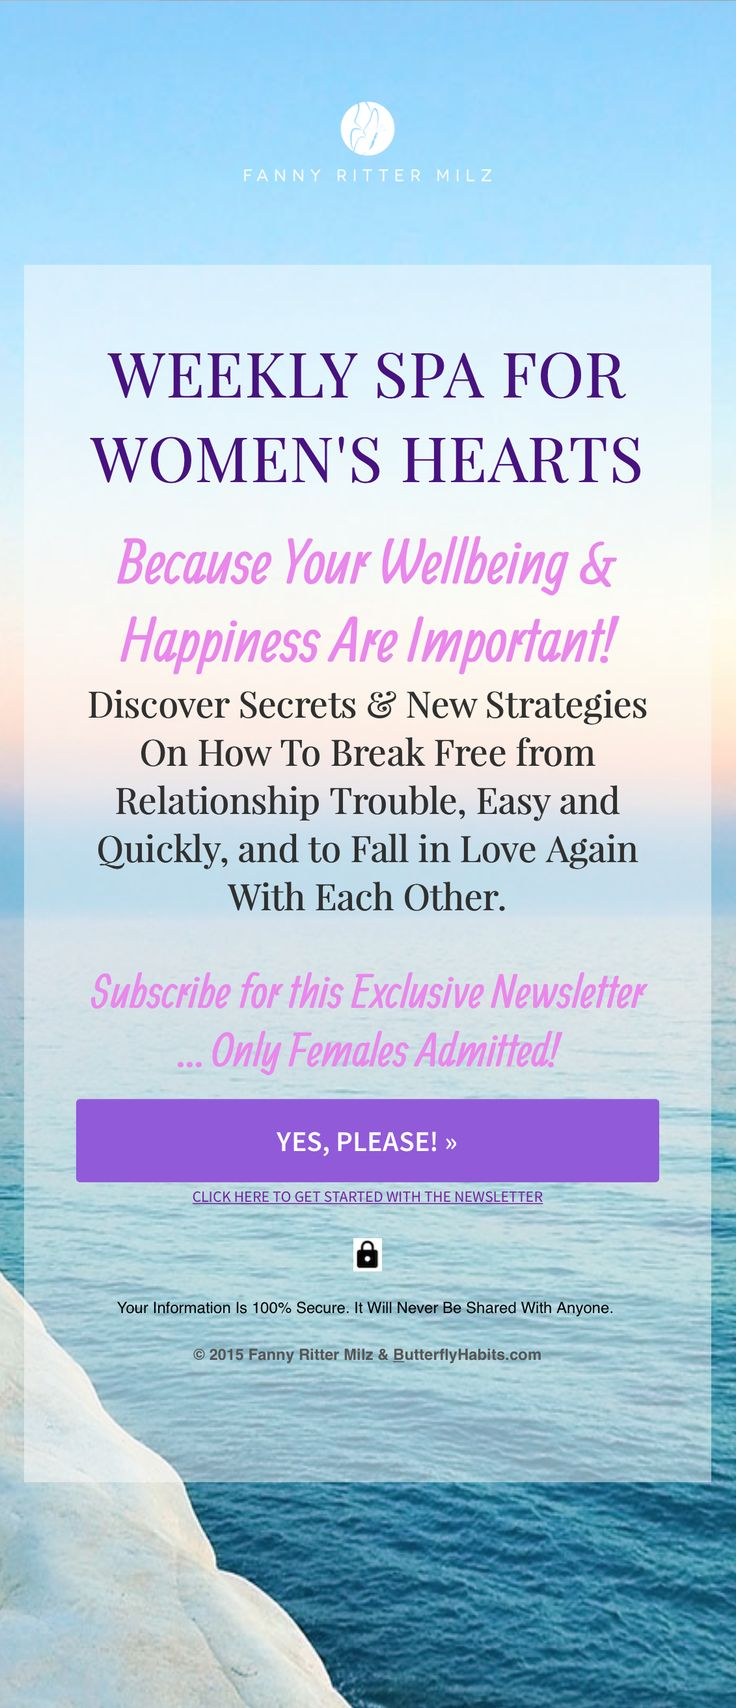 EXCLUSIVE Newsletter to Create the Amazing Love & Life You Want ... Subscription Only Admitted to Females